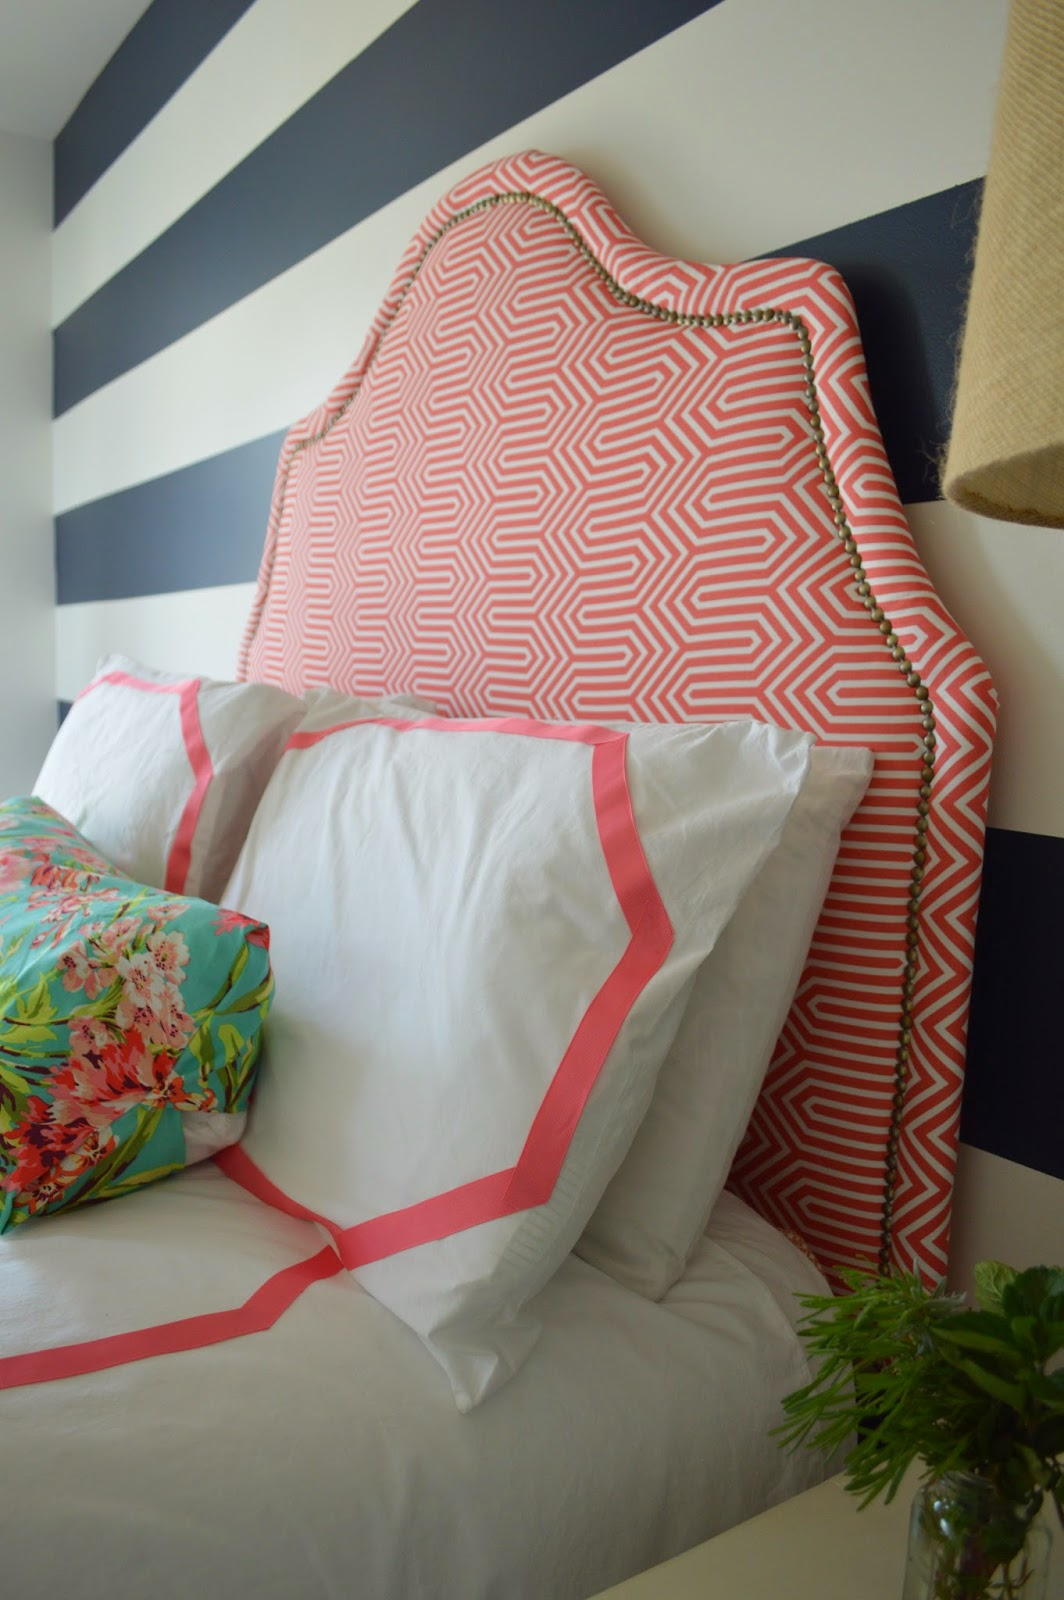 Right up my alley: DIY A Tall Headboard